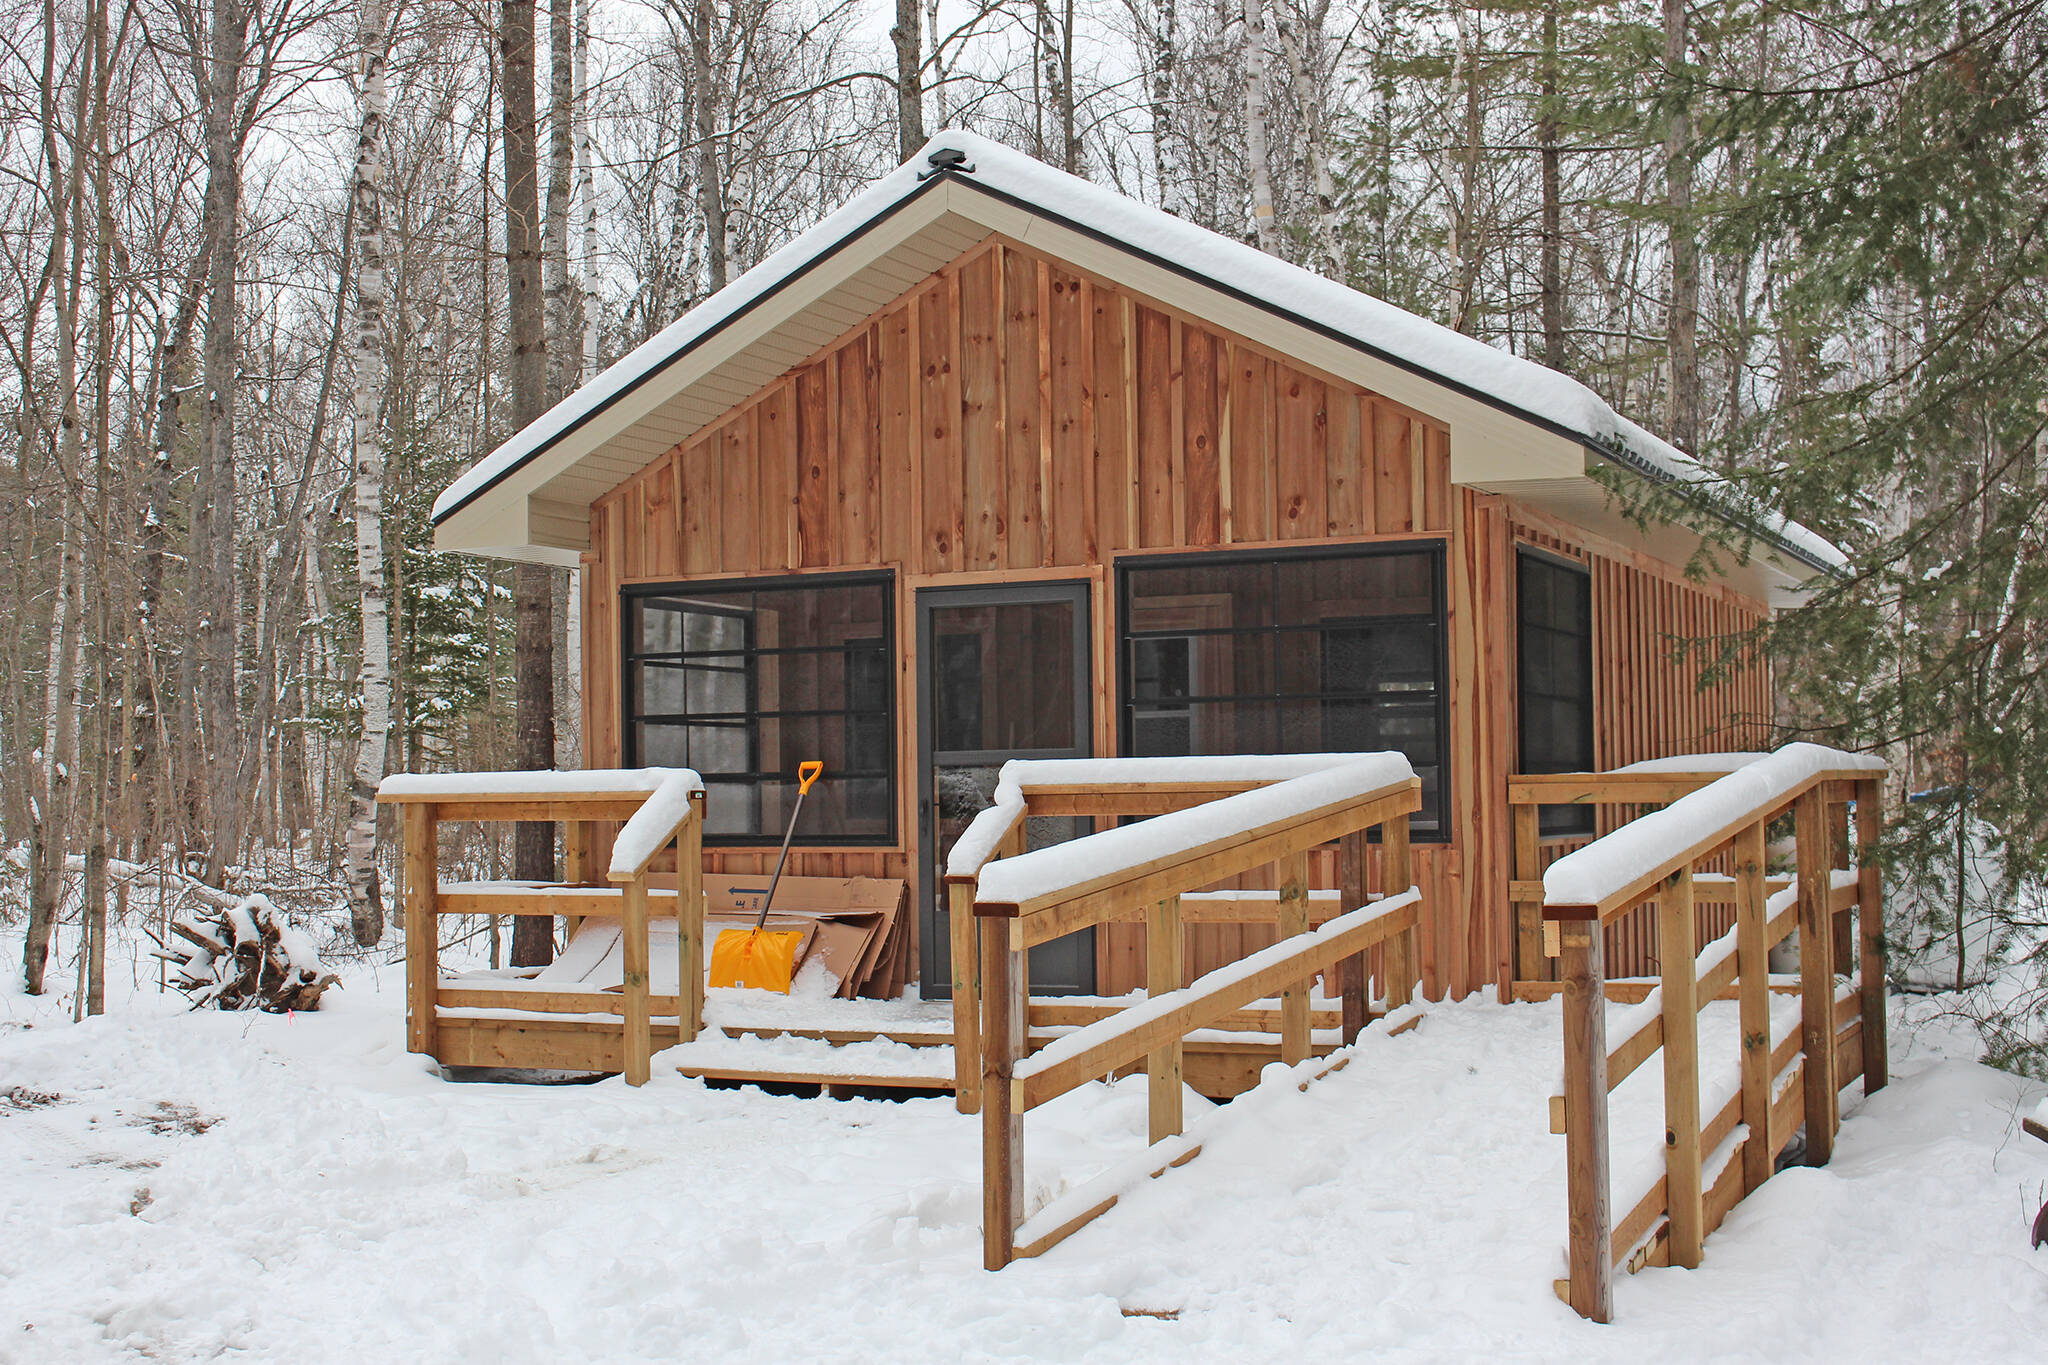 Camping London Ontario >> 5 Campsites With Heated Cabins And Yurts Near Toronto